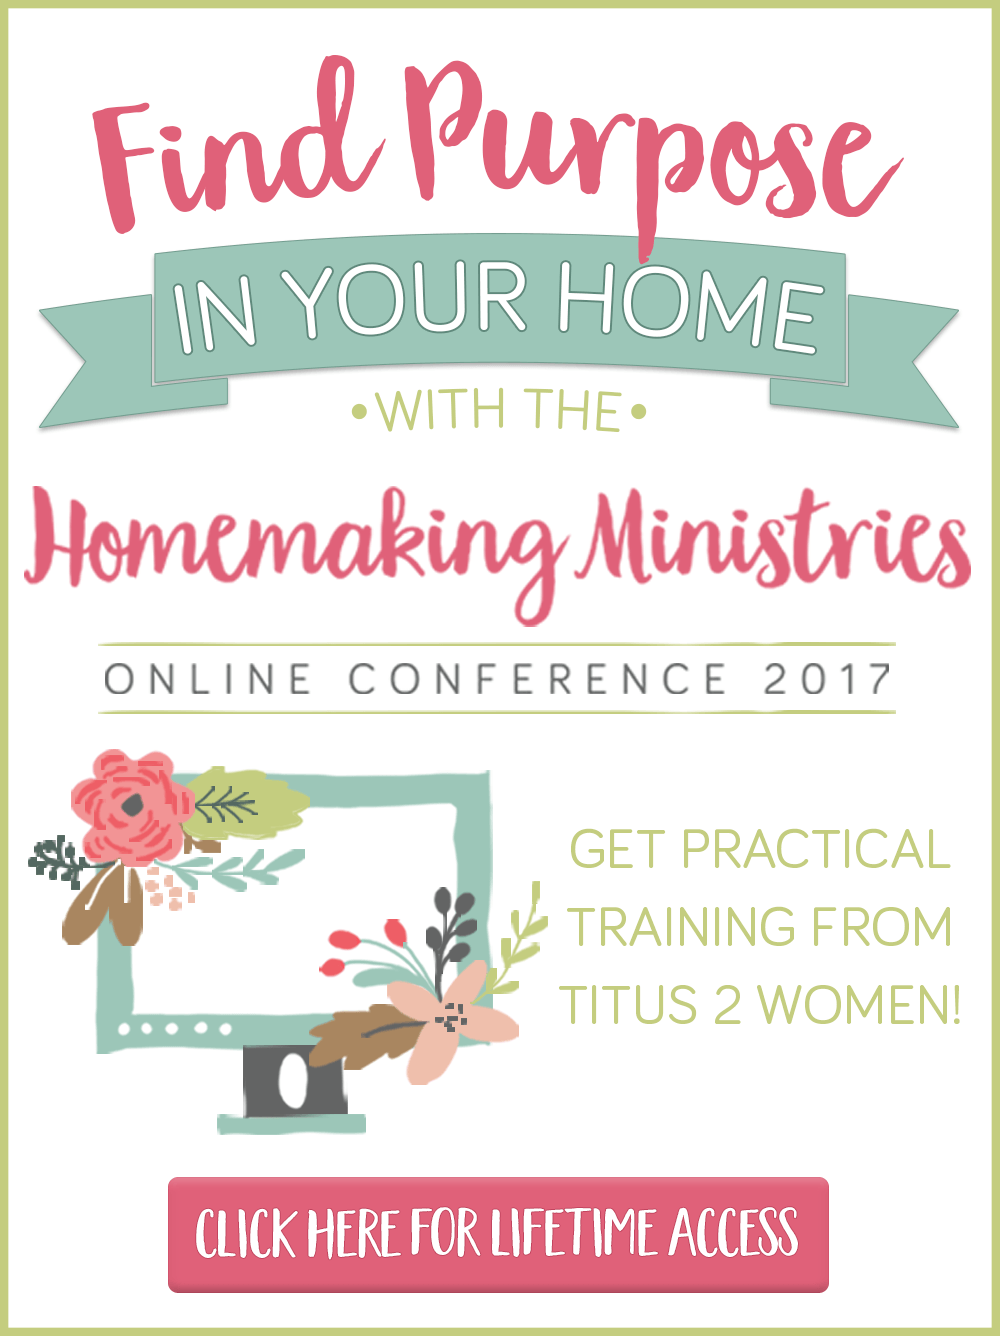 Find purpose in your home, along with balance & greater joy, as you learn alongside 23 amazing Titus 2 women at this year's Homemaking Ministries Conference!